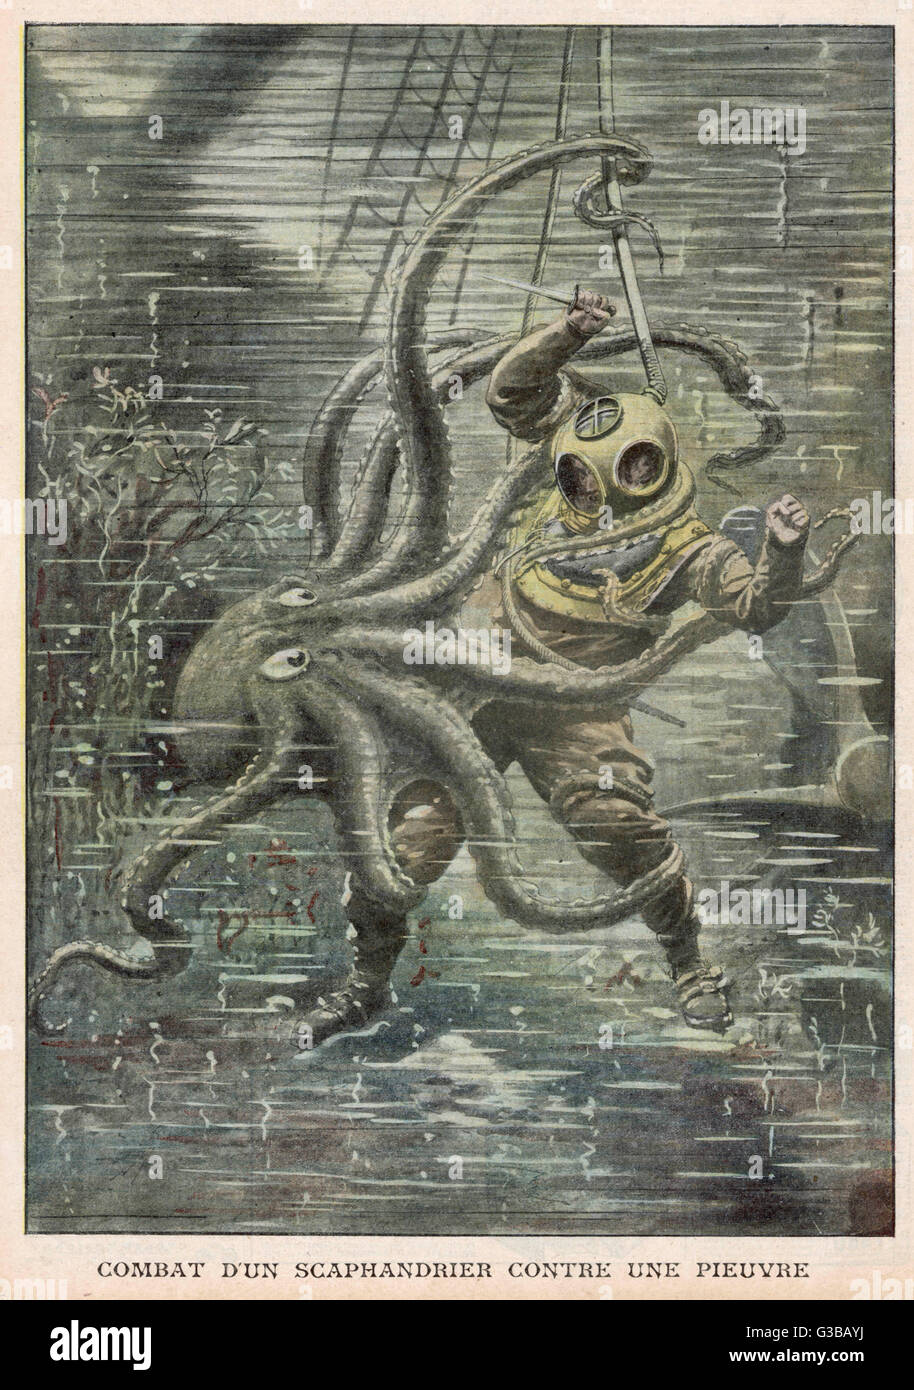 Many divers are fatally  attacked by octopi but  American Martin Lund manages  to escape the embraces of this  enormous - Stock Image